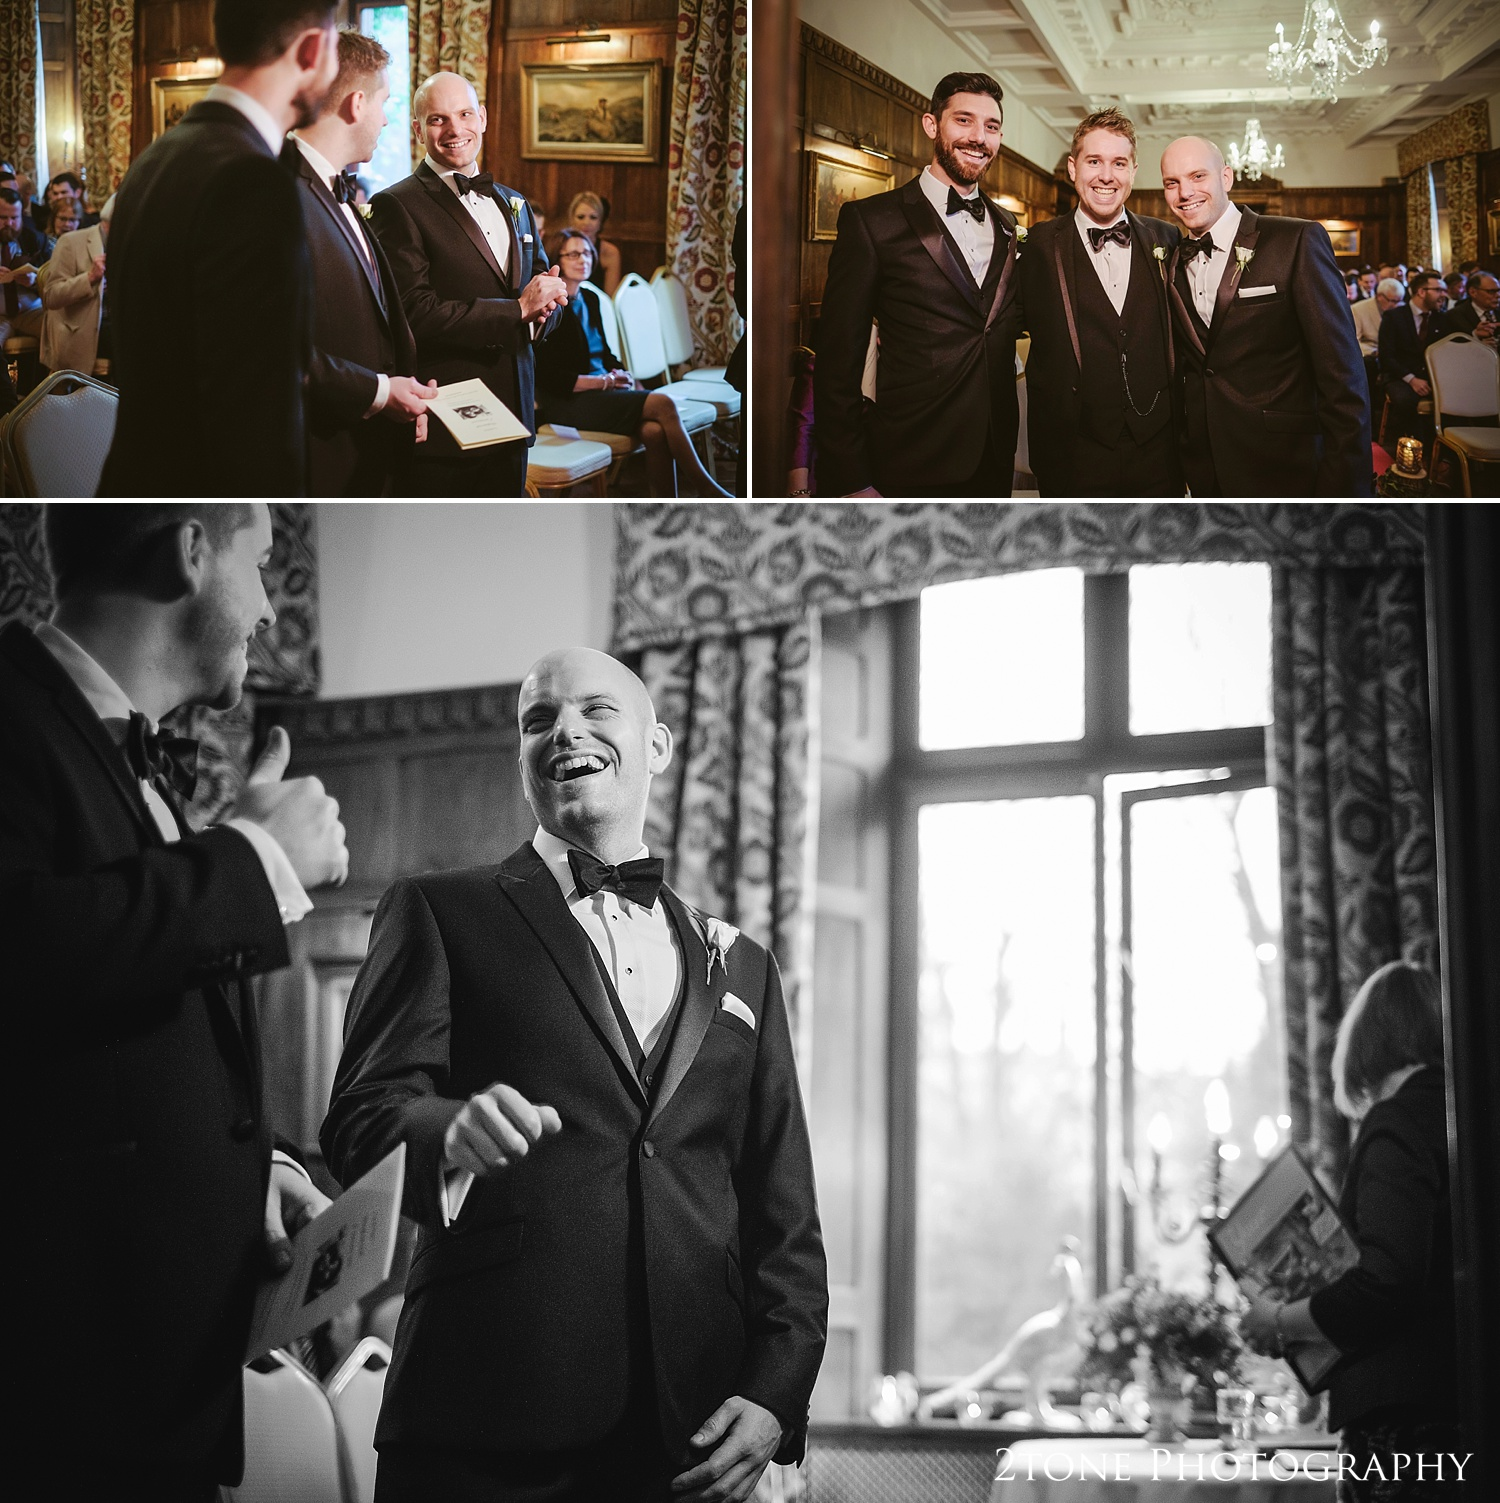 The groom at the start of the ceremony at Ellingham Hall. Winter wedding photography by www.2tonephotography.co.uk